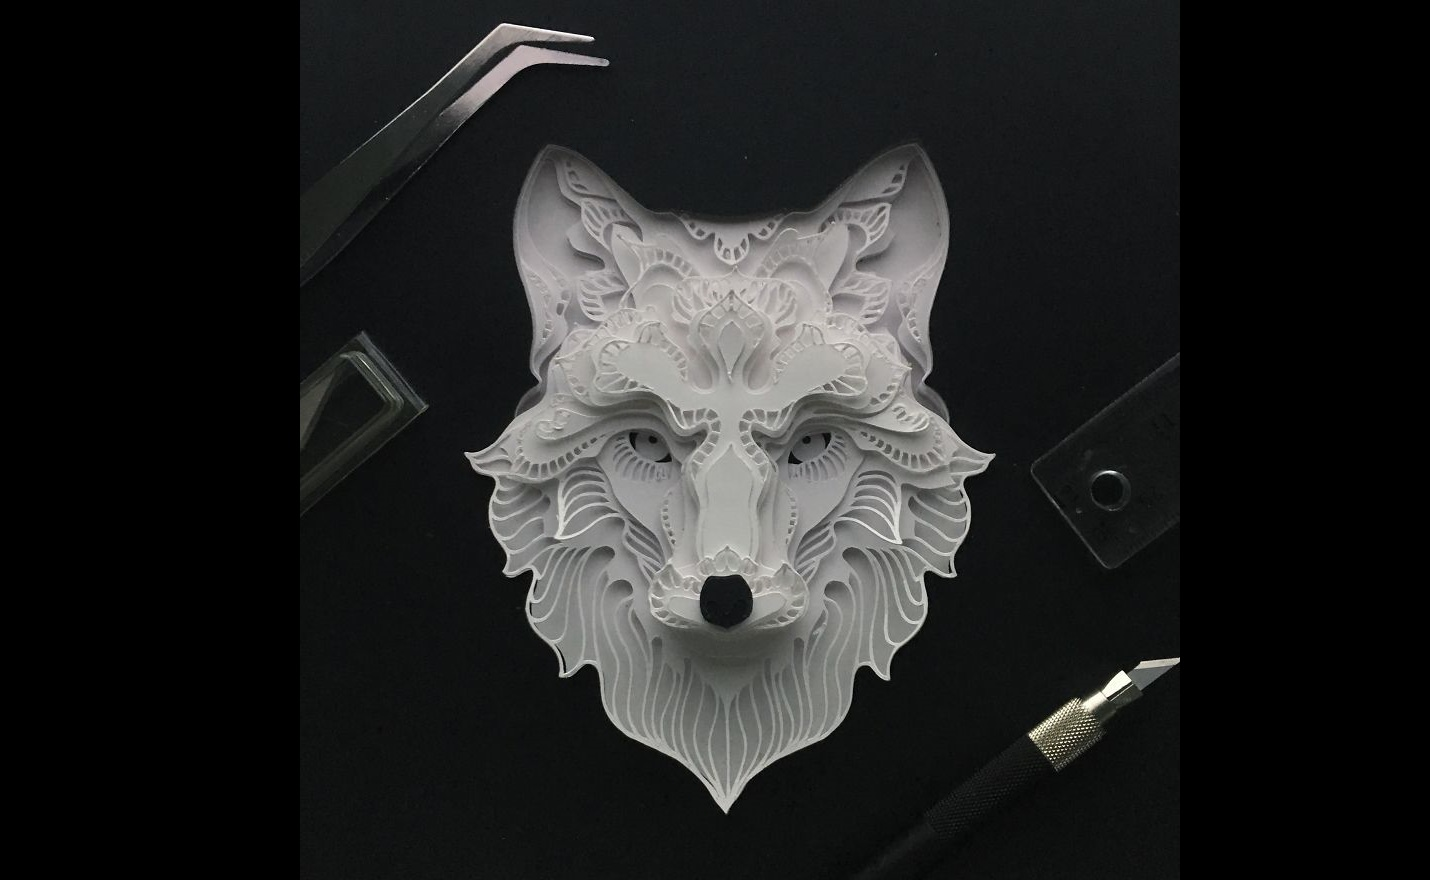 amazing paper cut art